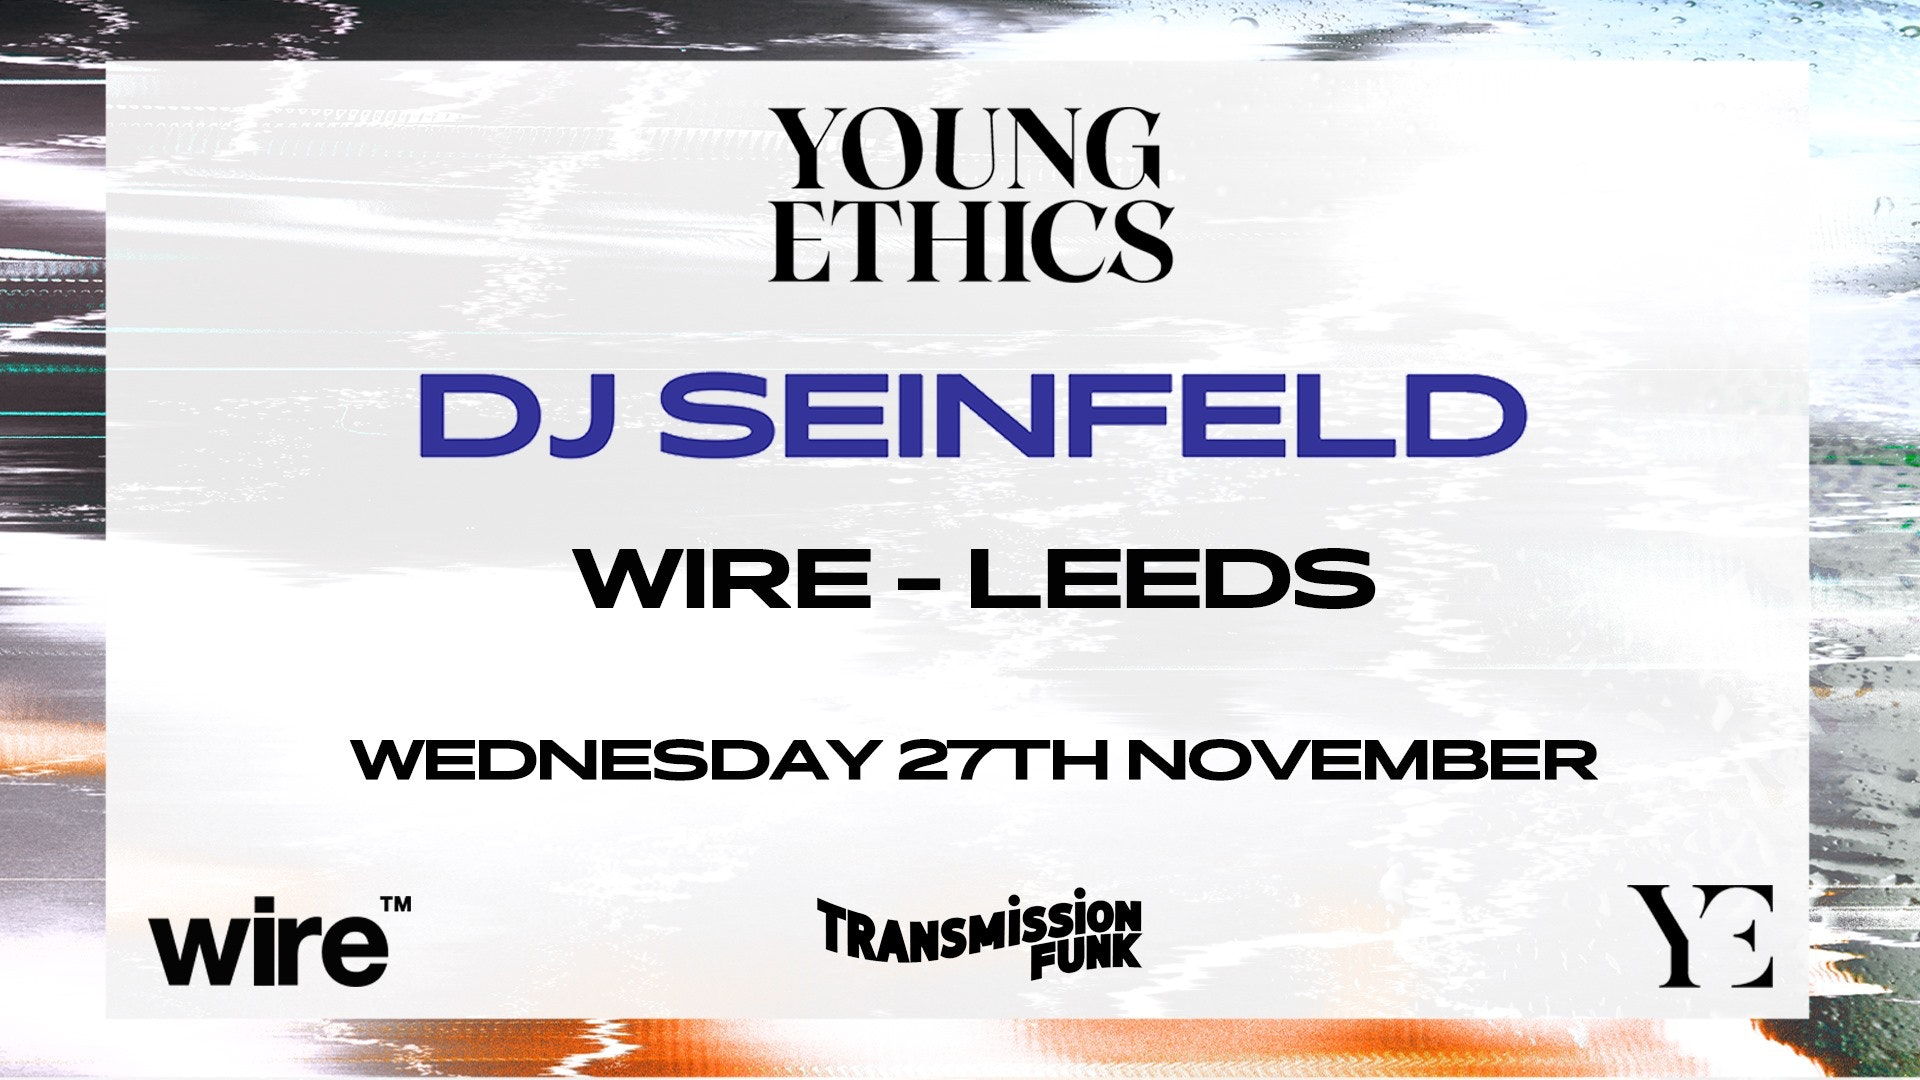 Transmission Funk presents DJ Seinfeld – Young Ethics tour